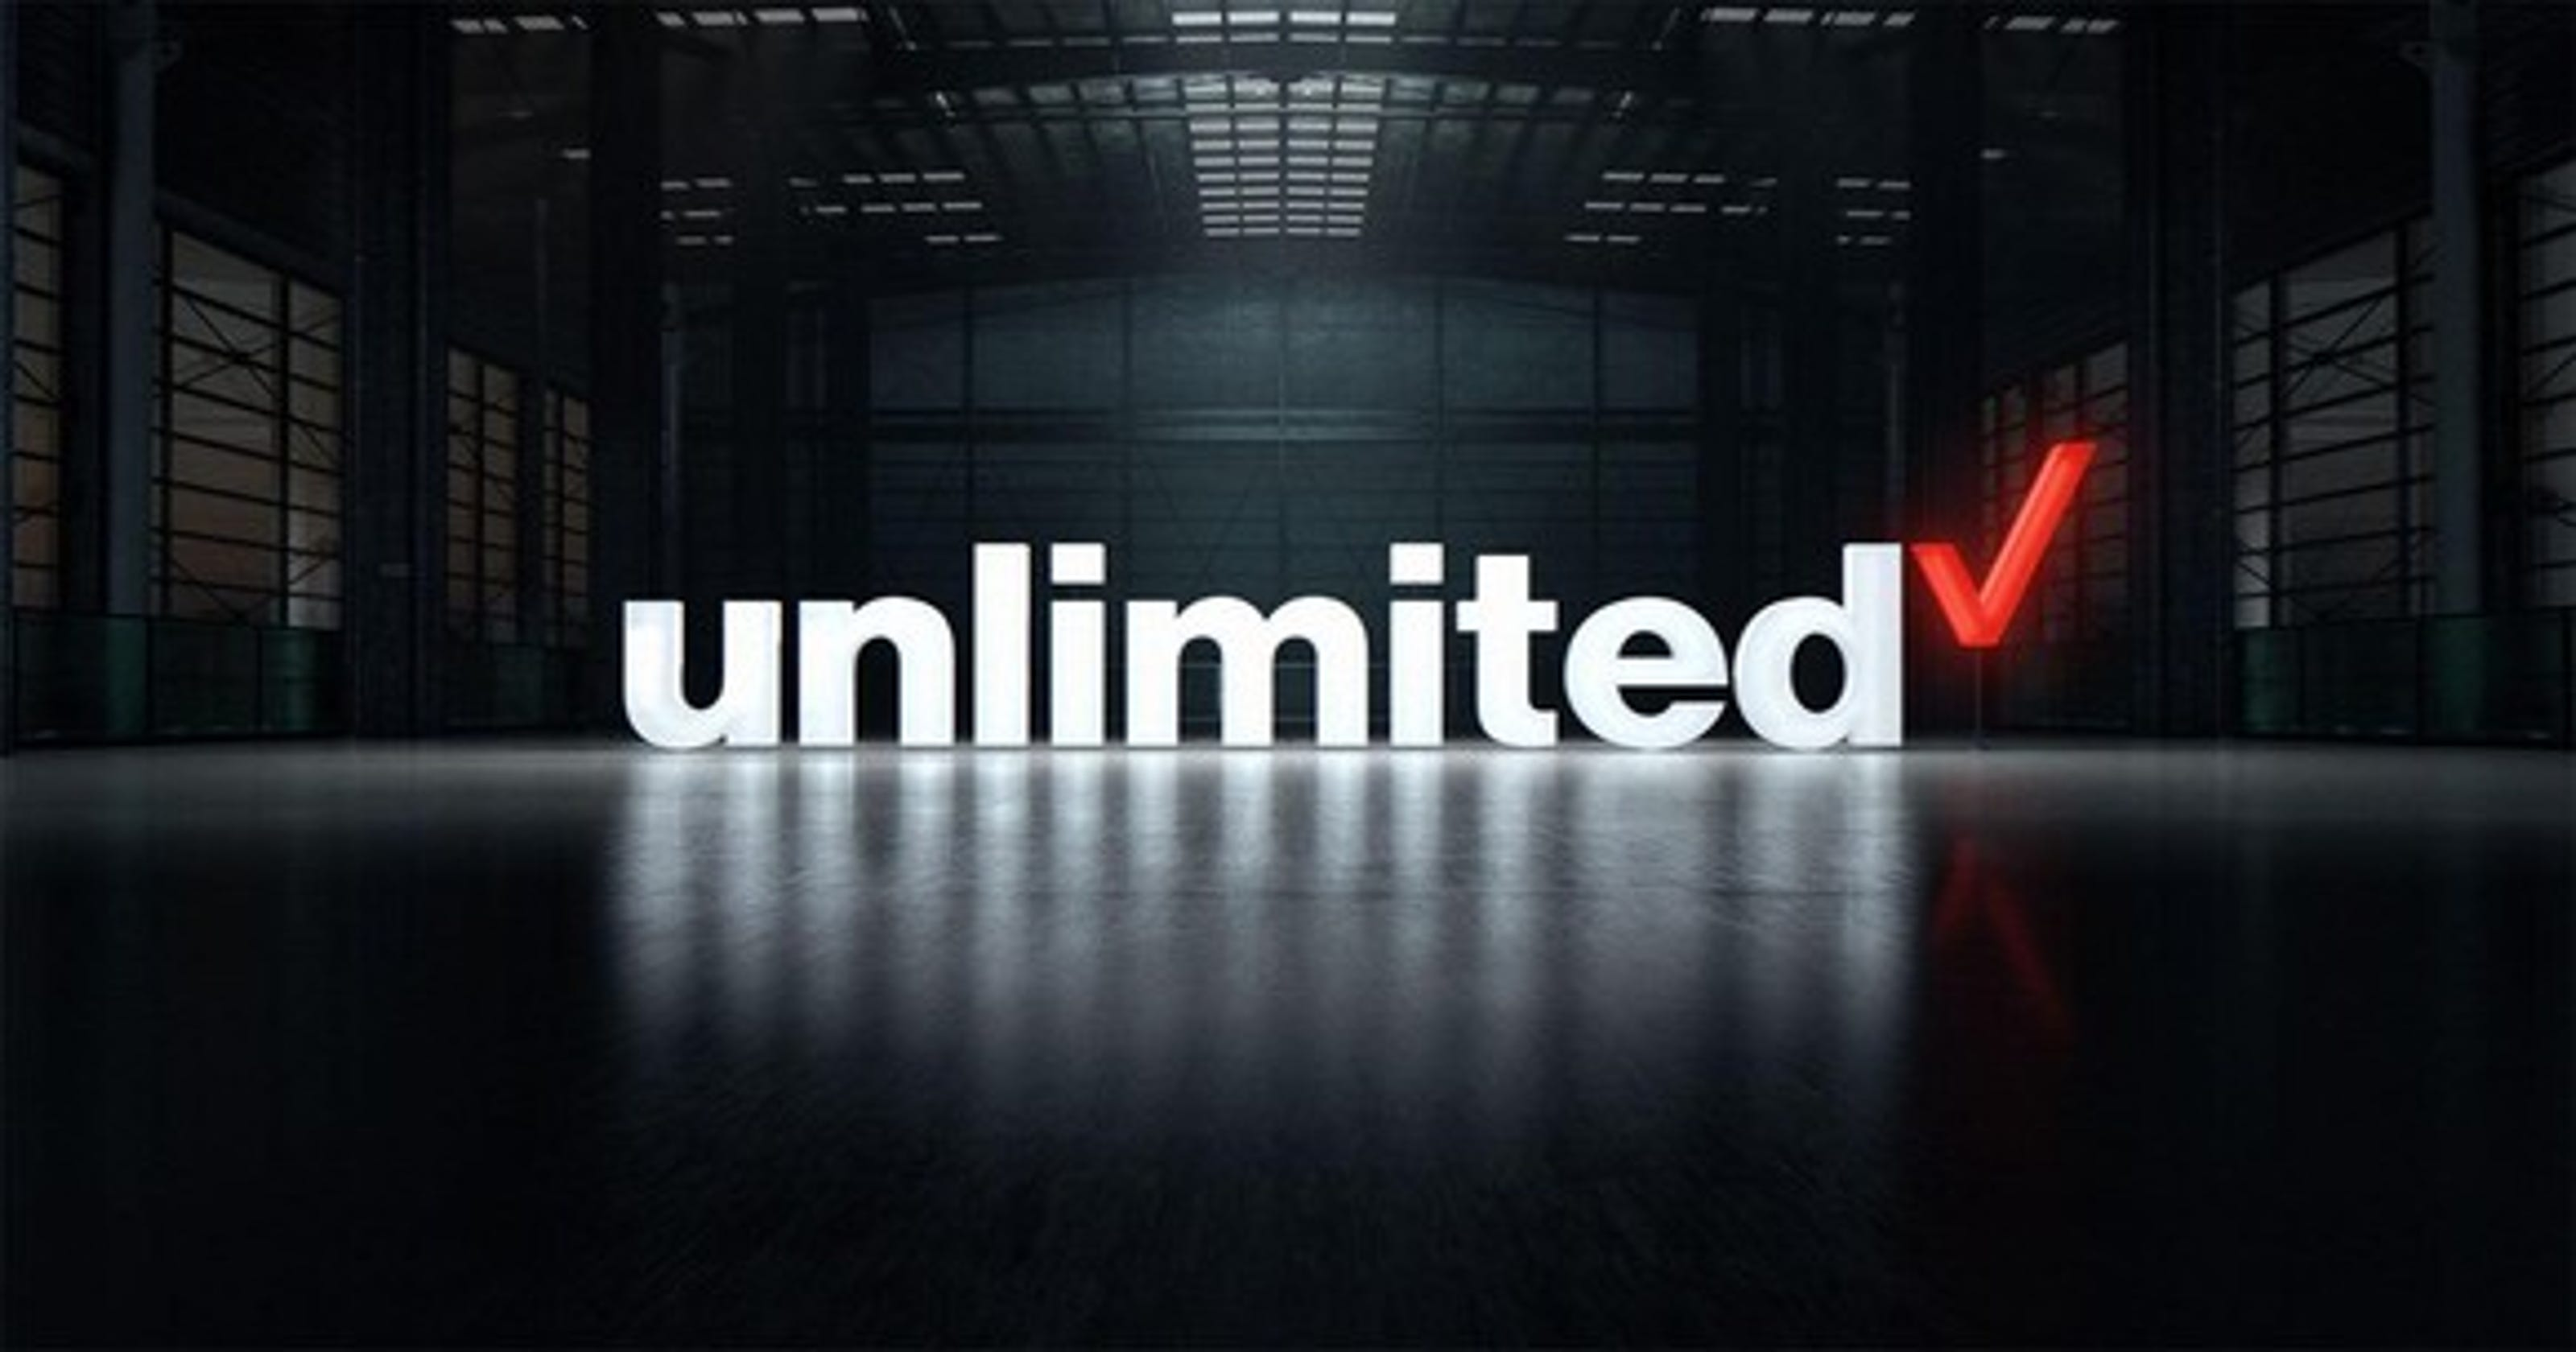 Verizon's latest unlimited plan targets data-heavy users